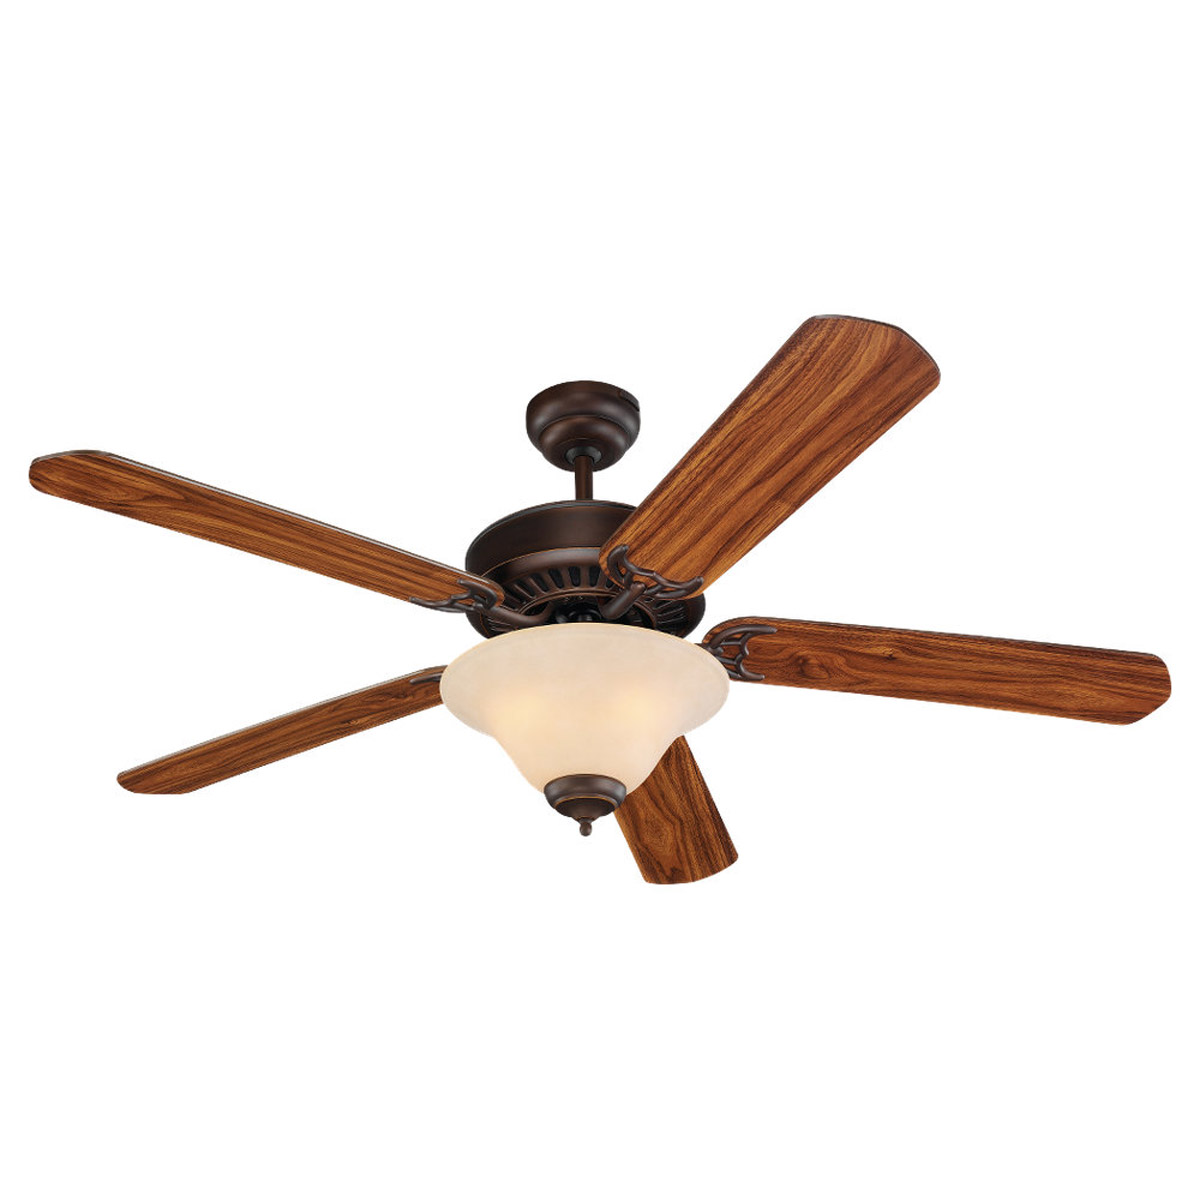 Sea Gull Lighting 3 Light 52in Quality Pro Deluxe Ceiling Fan in Roman Bronze 15161B-191